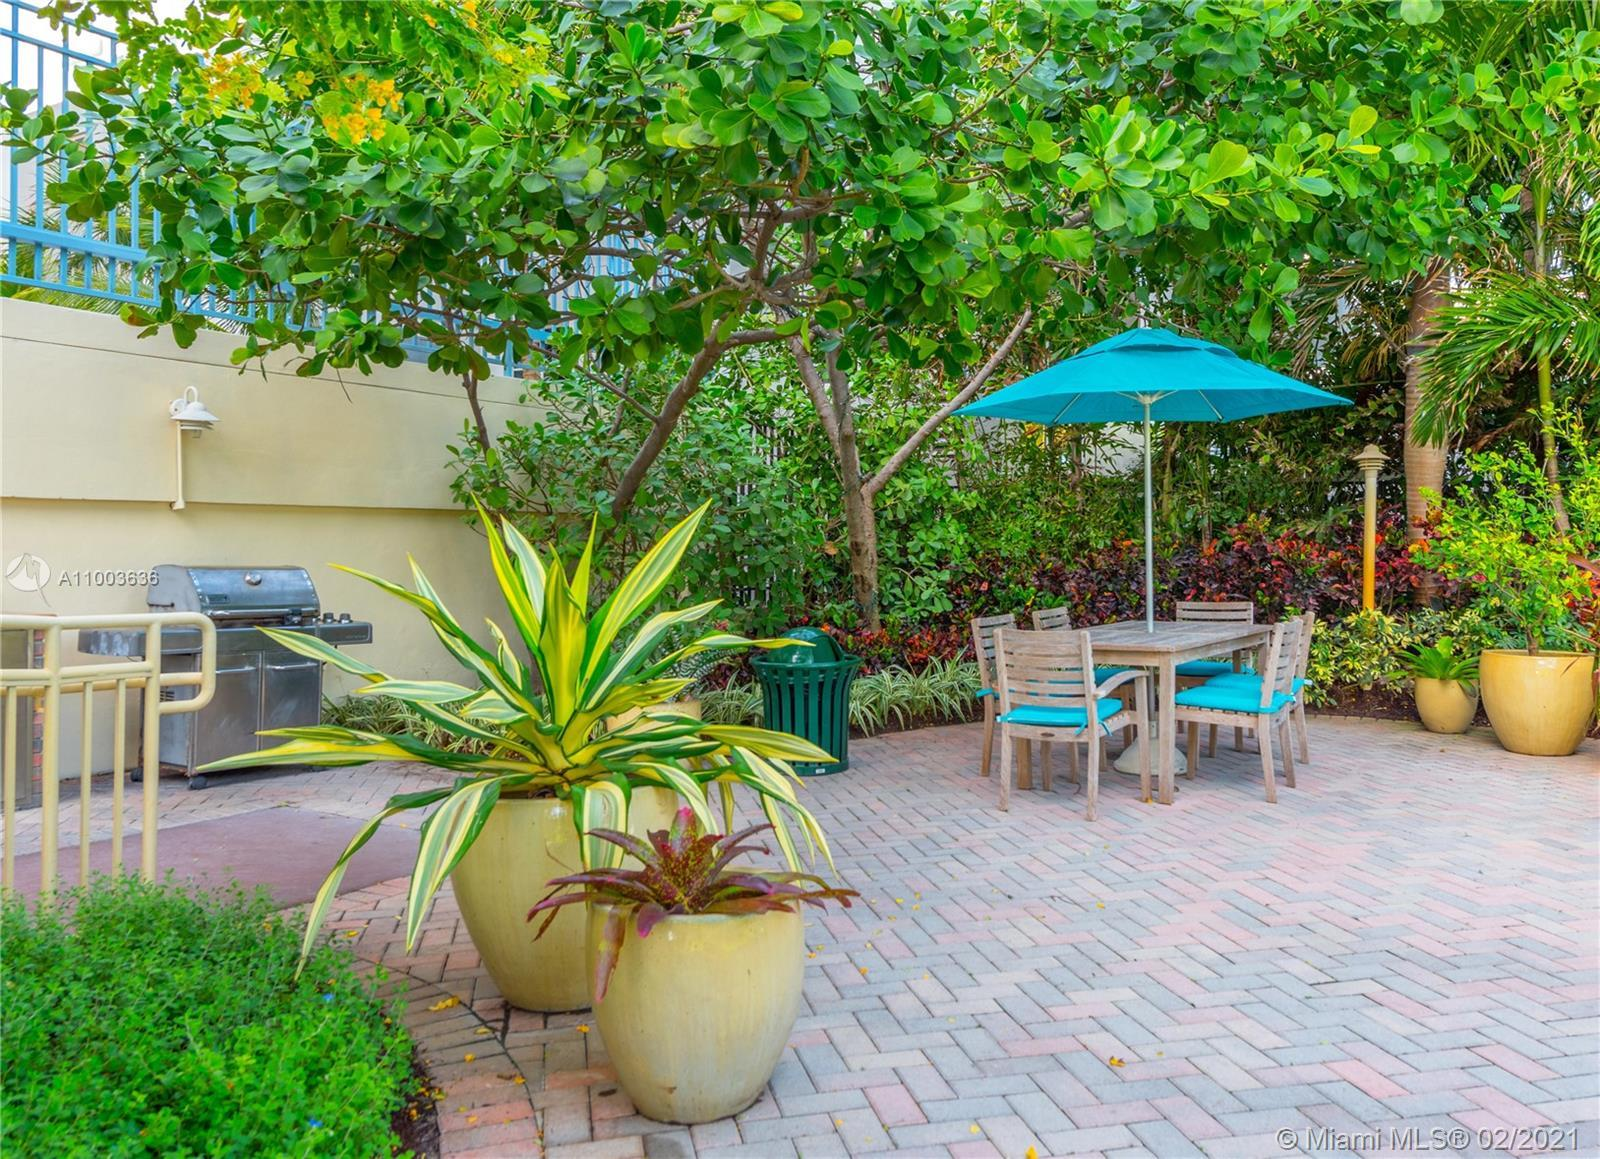 WALK OR BIKE ANYWHERE FROM THIS OCEANFRONT BEAUTY LOCATED IN THE HEART OF SOUTH BEACH! COMFORT BEST